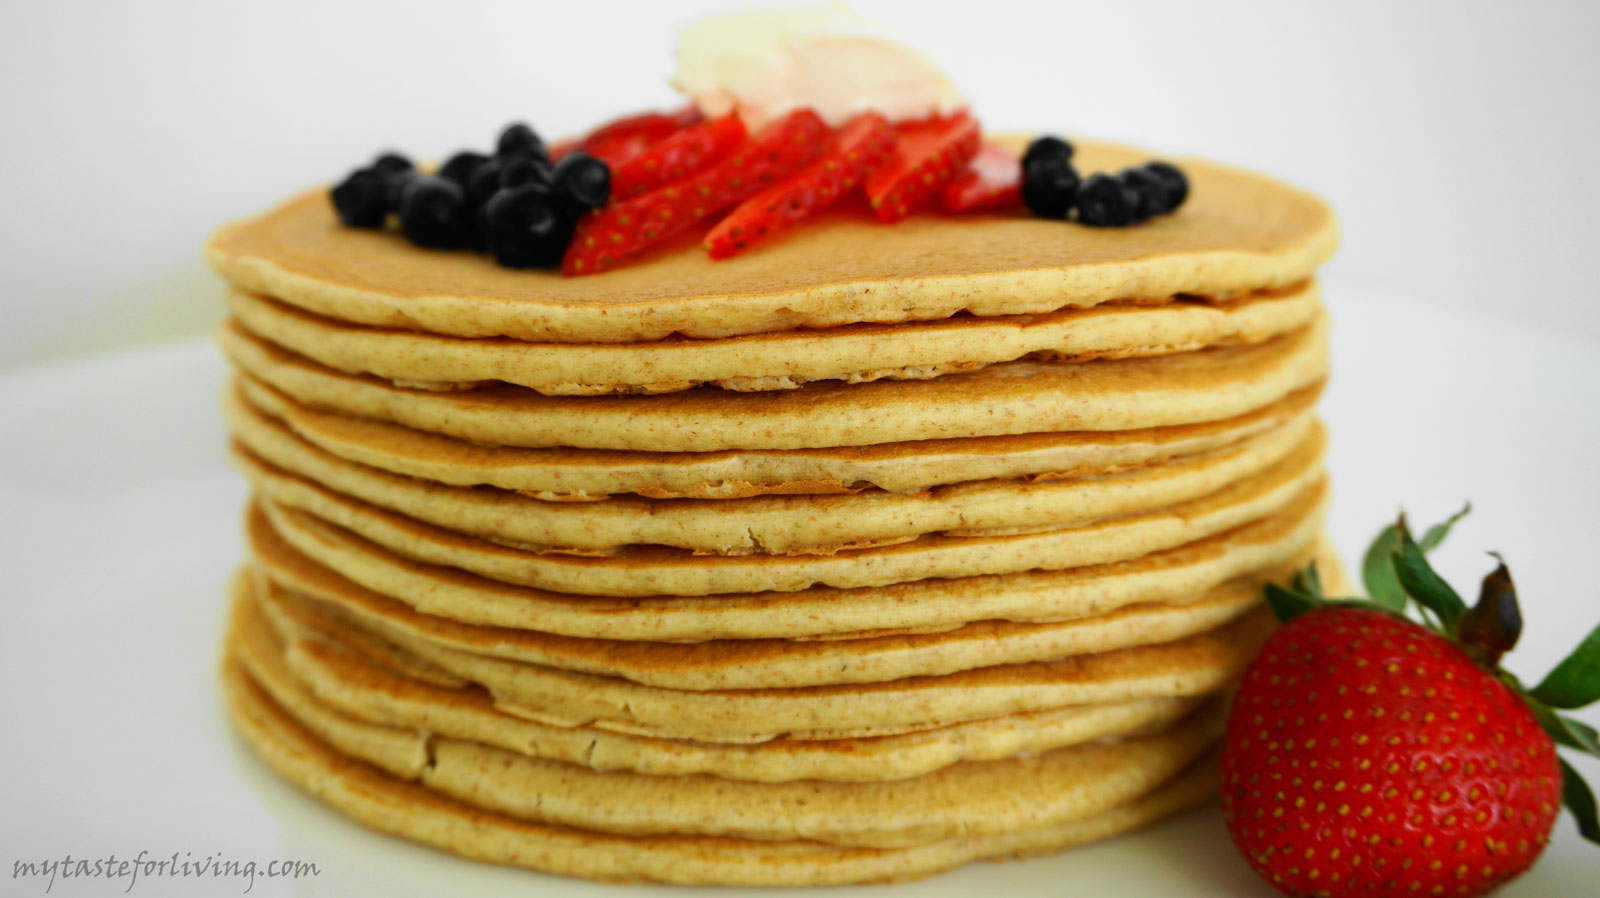 Fluffy pancakes - the perfect breakfast.